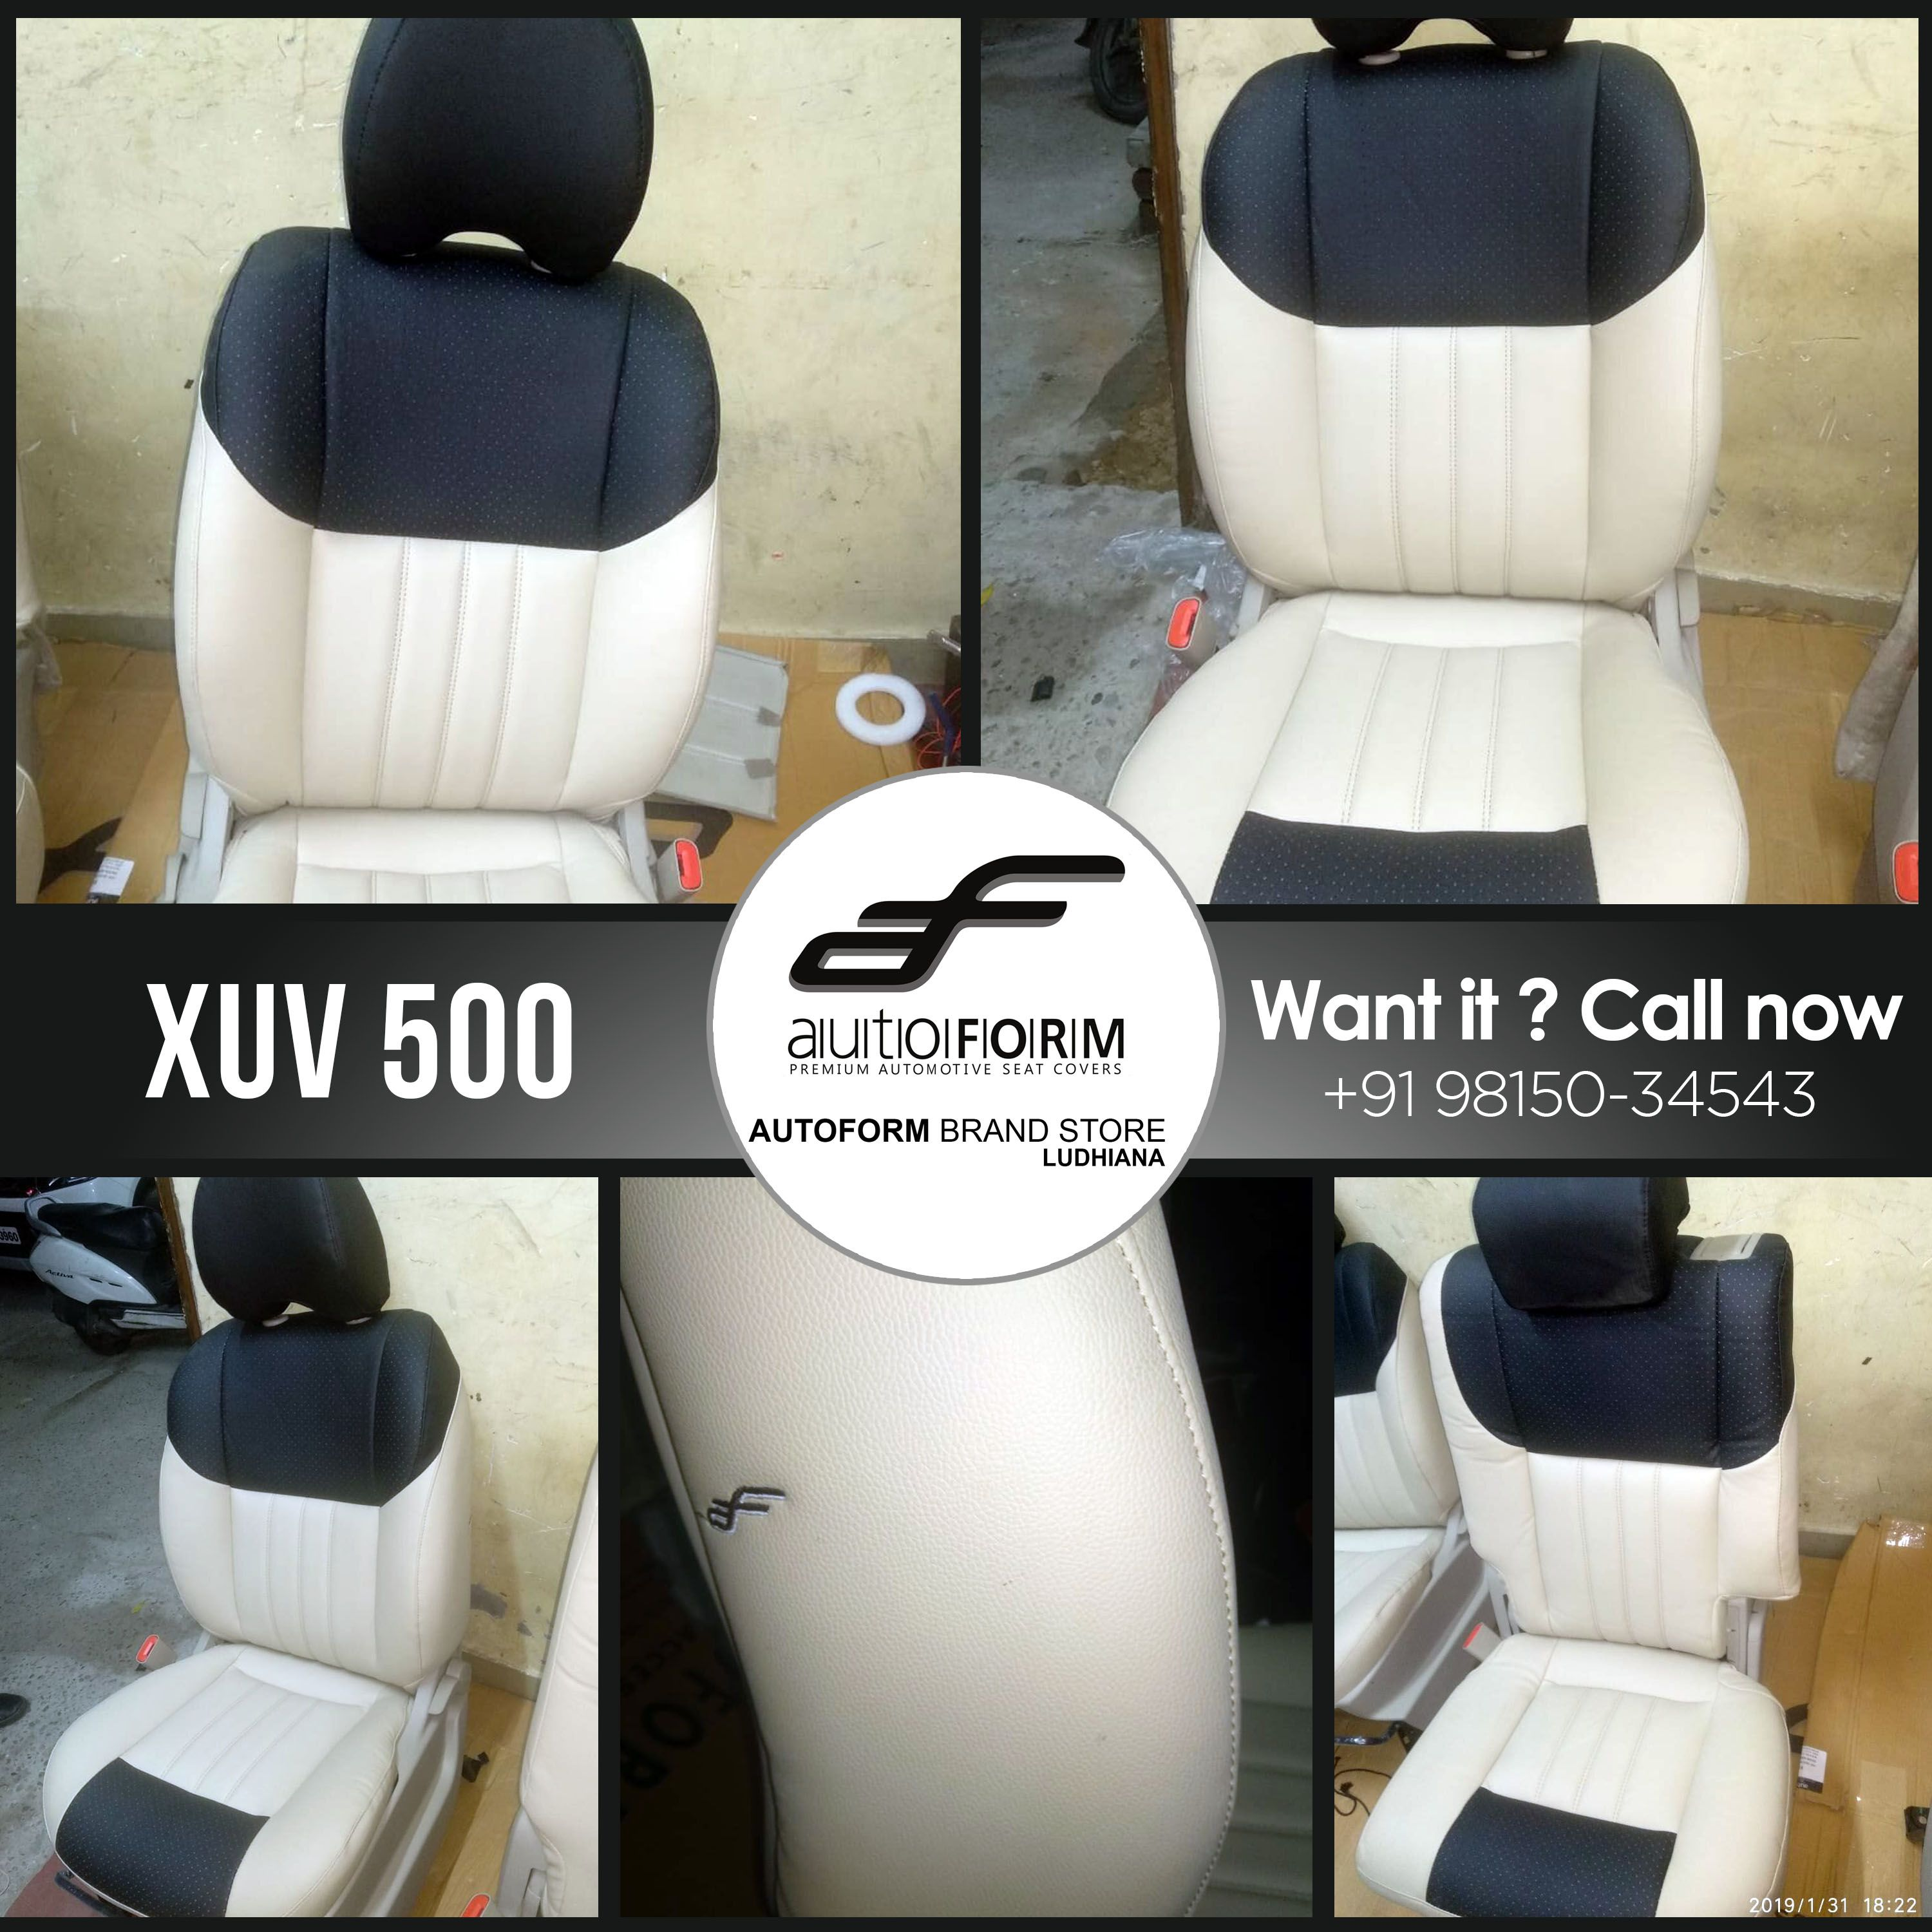 Mahindra Xuv 500 Is All Ready To Fit In With The Braded Autoform Car Seat Covers Style So Premium And Looks So Classy Riv Carseat Cover Car Seats Seat Covers